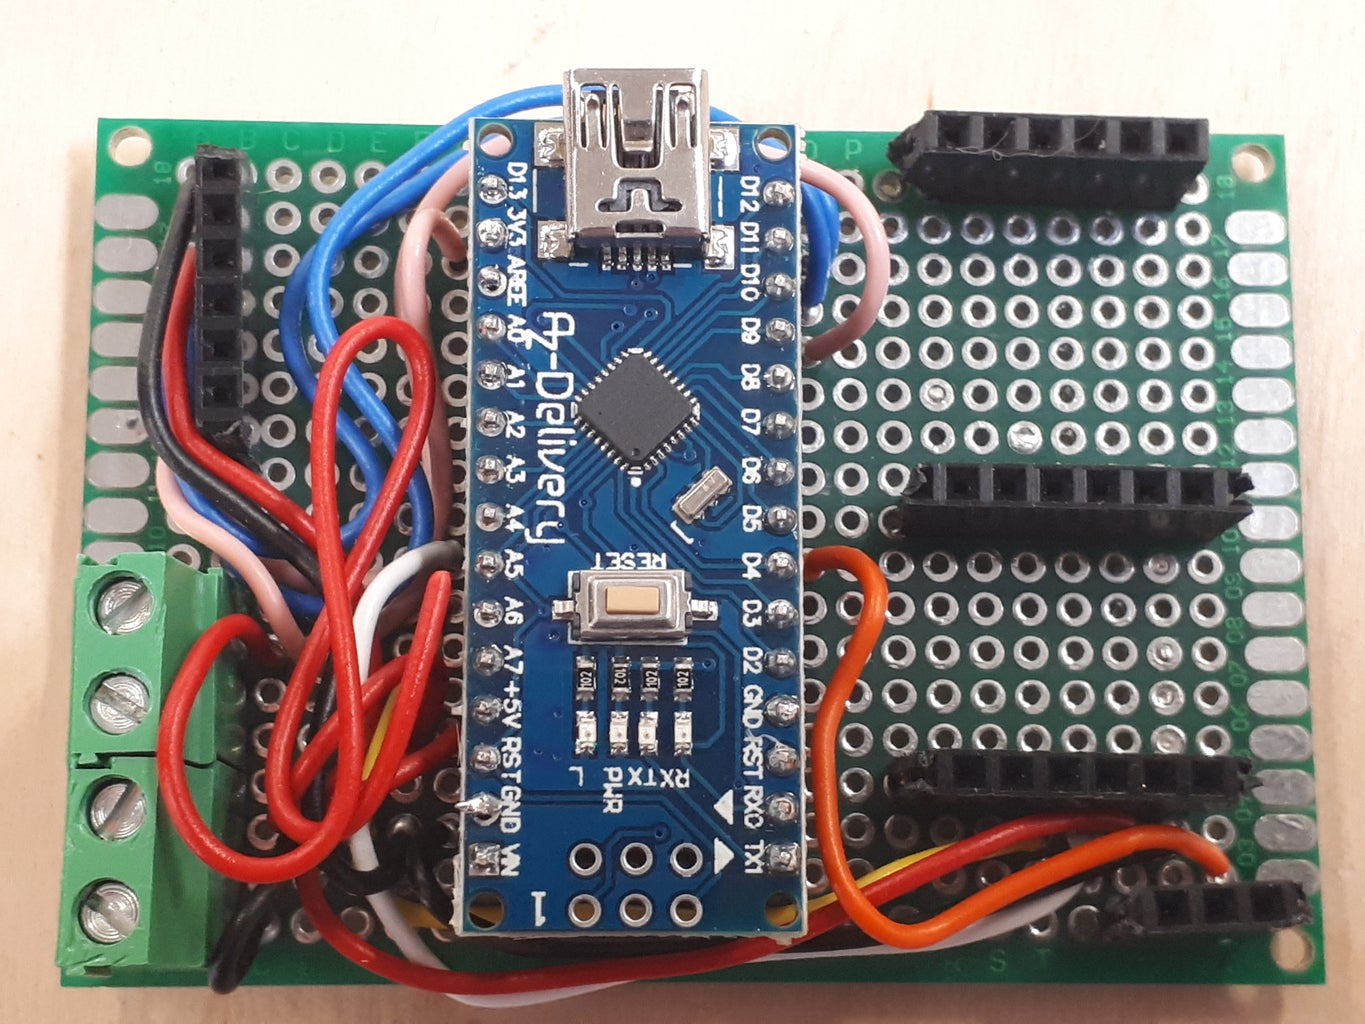 Assembly of Electrical Componnement on a PCB